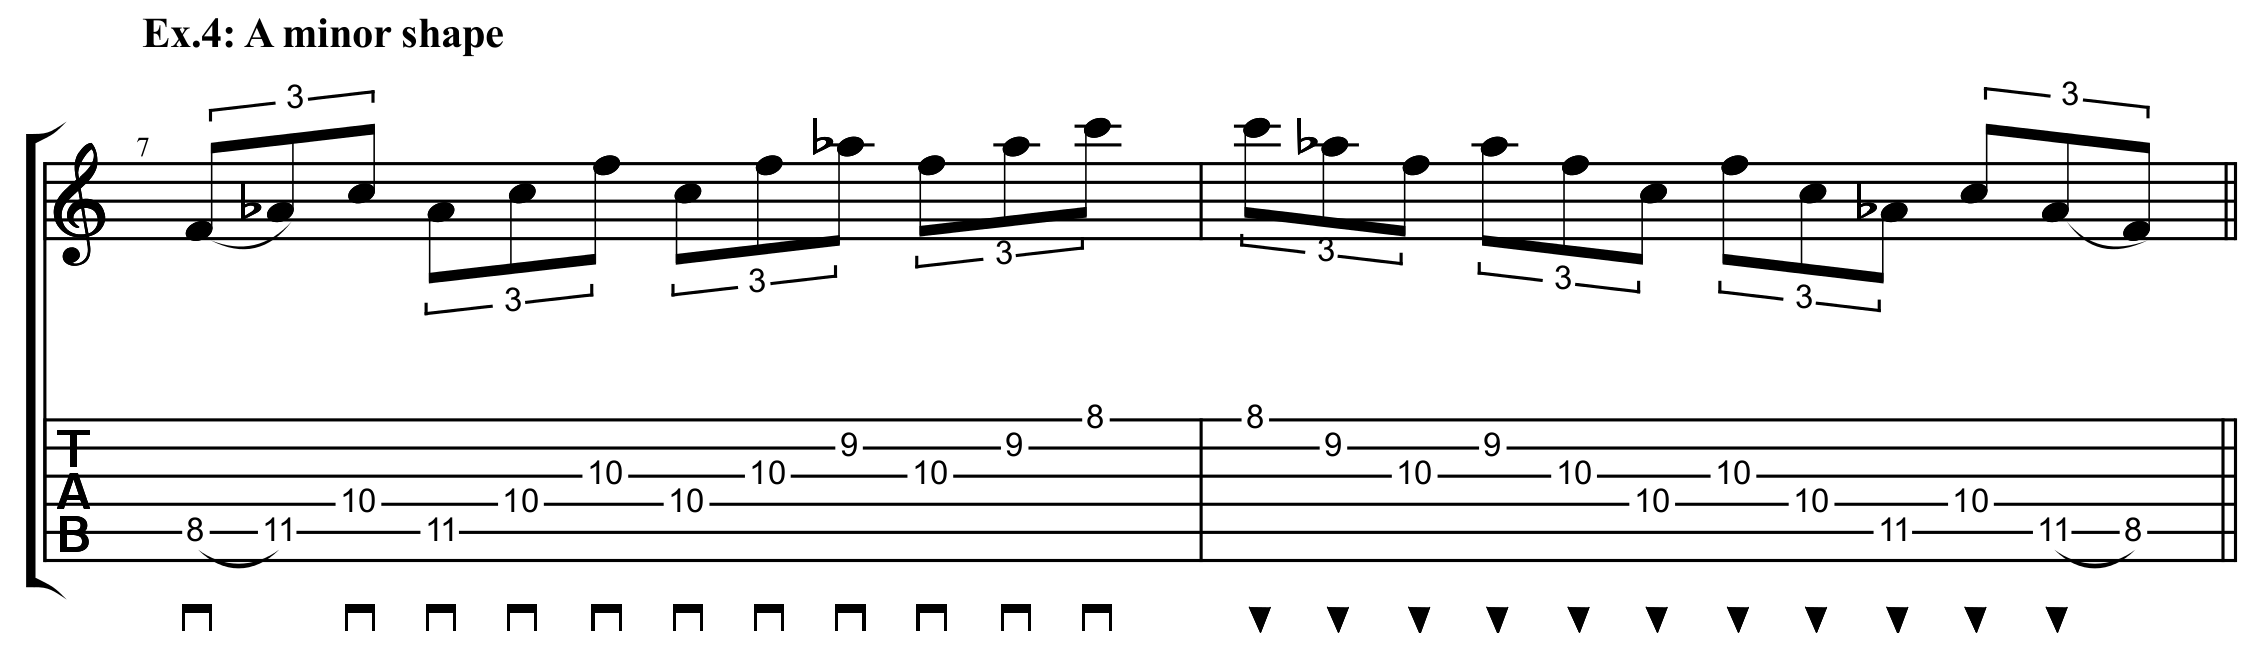 A minor shaped 3 note chunk sweep exercise